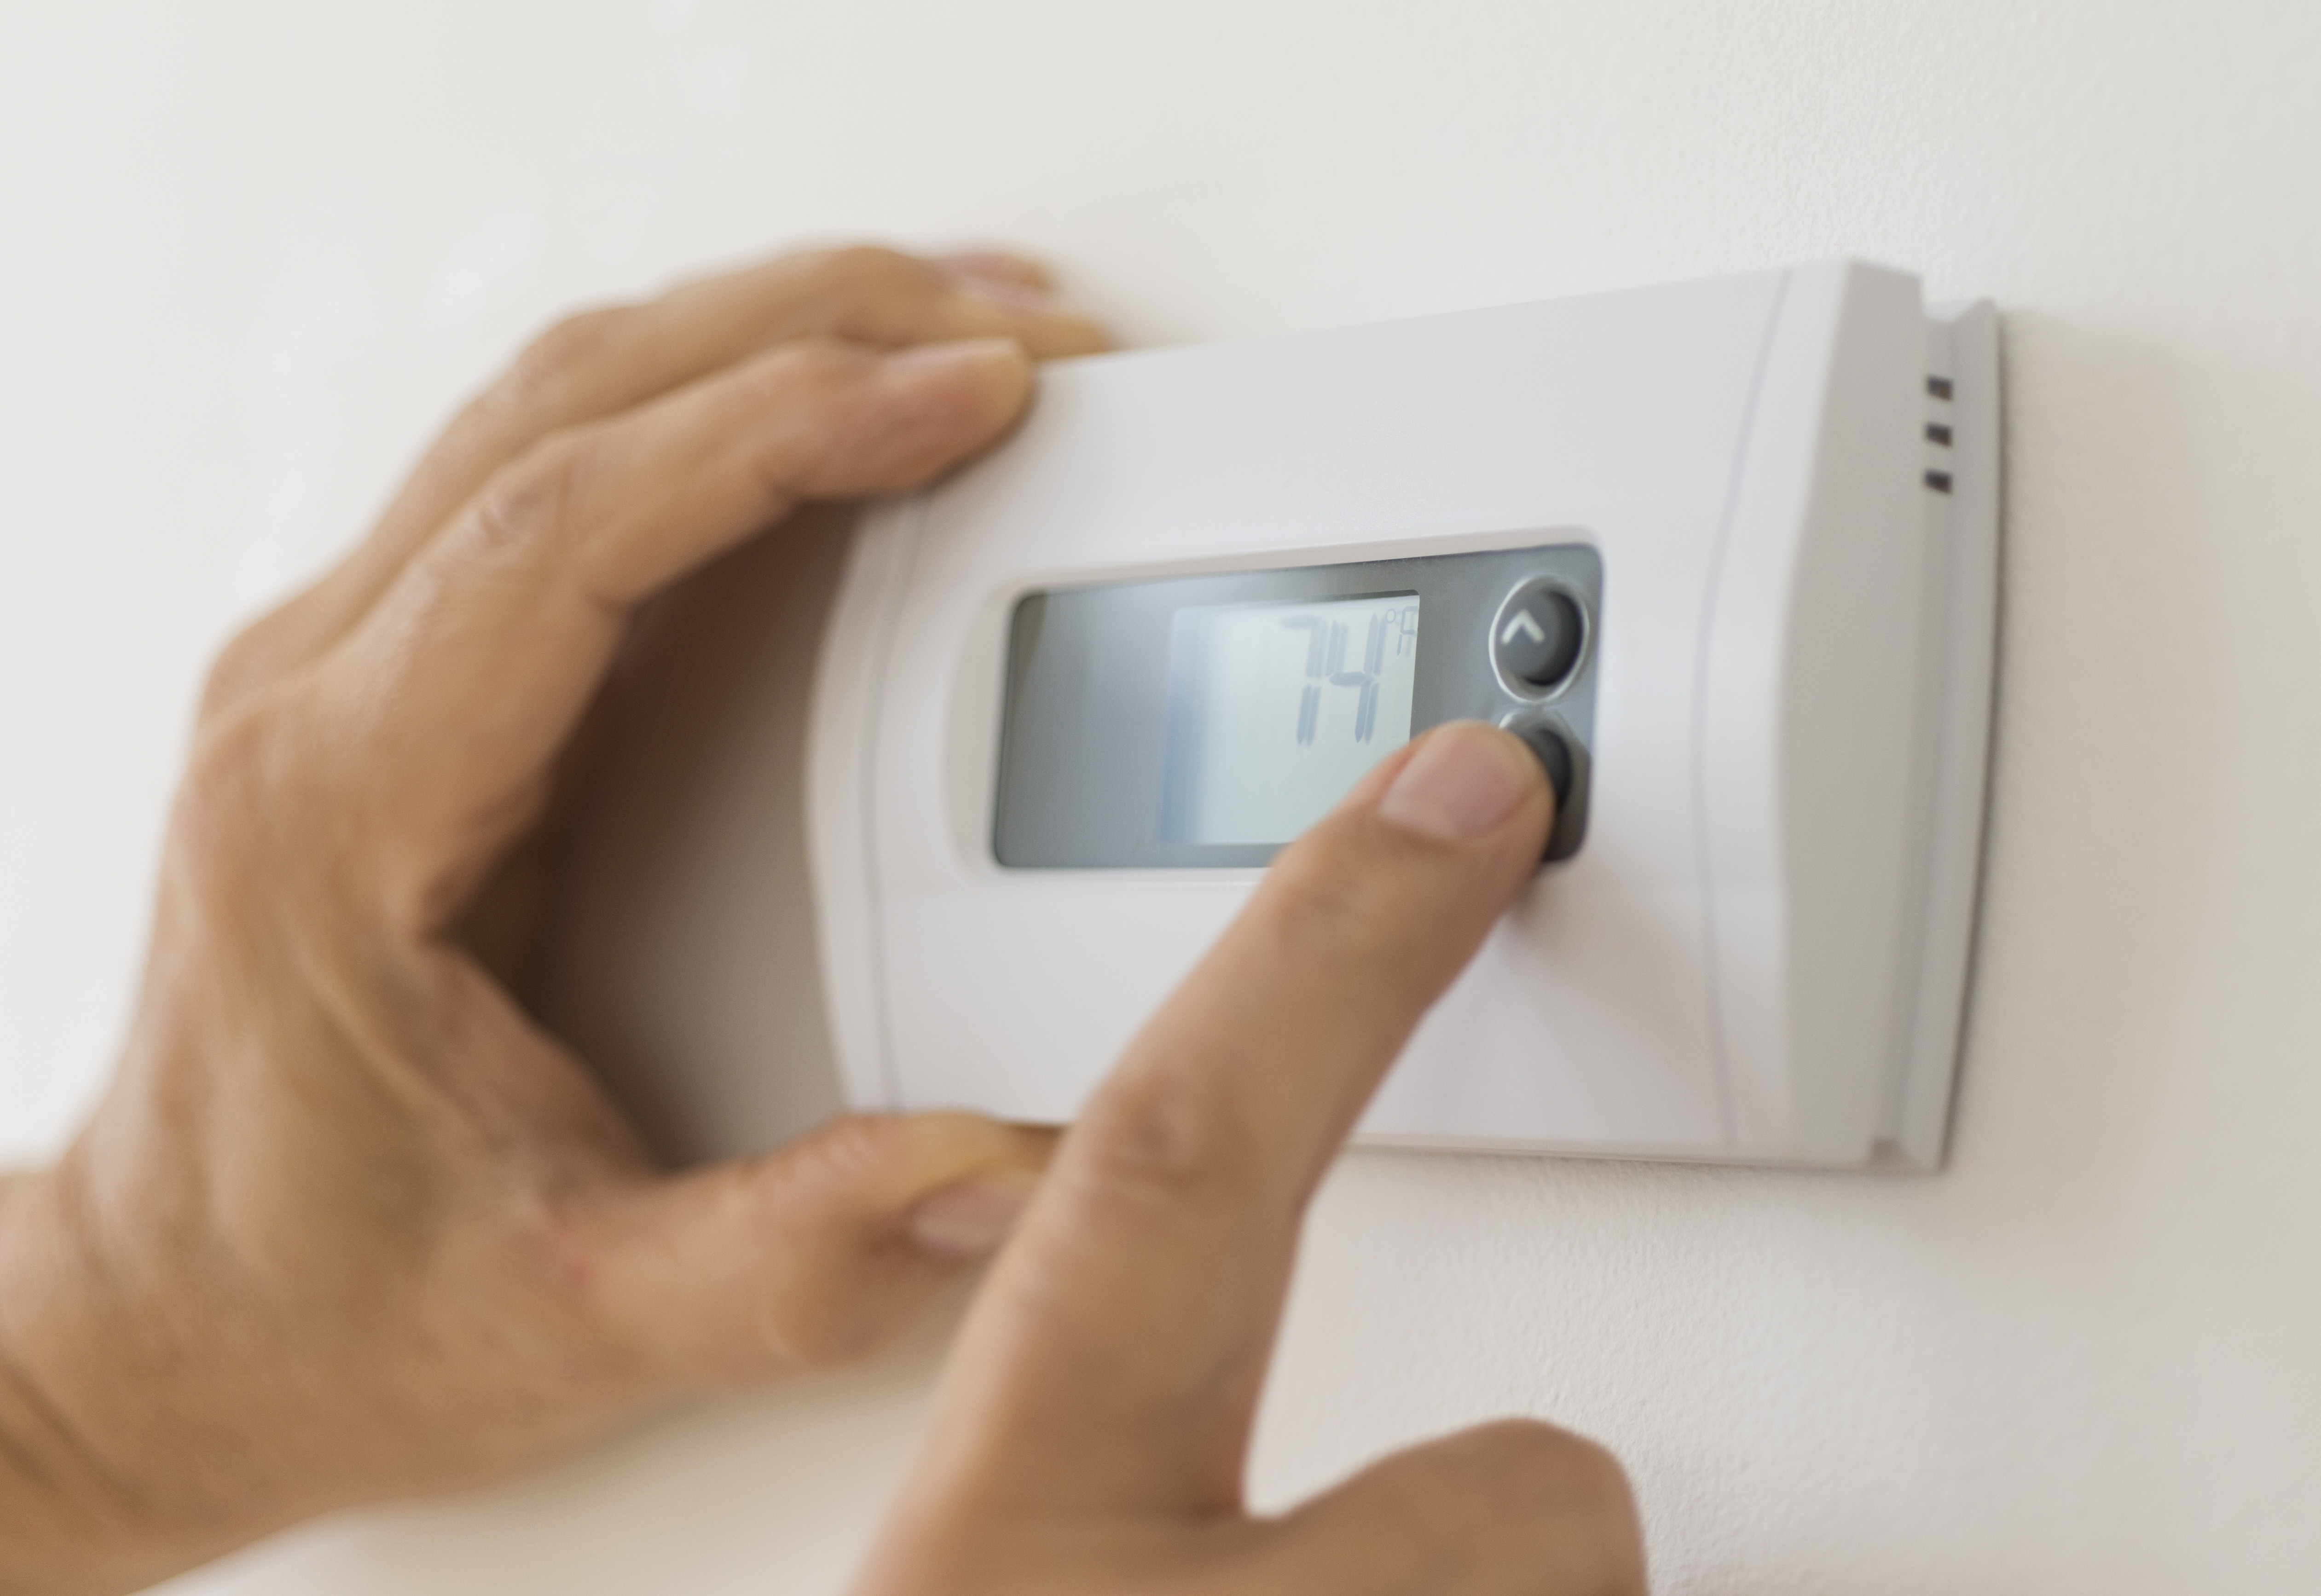 How to Change the Battery in a Honeywell Thermostat | Hunker